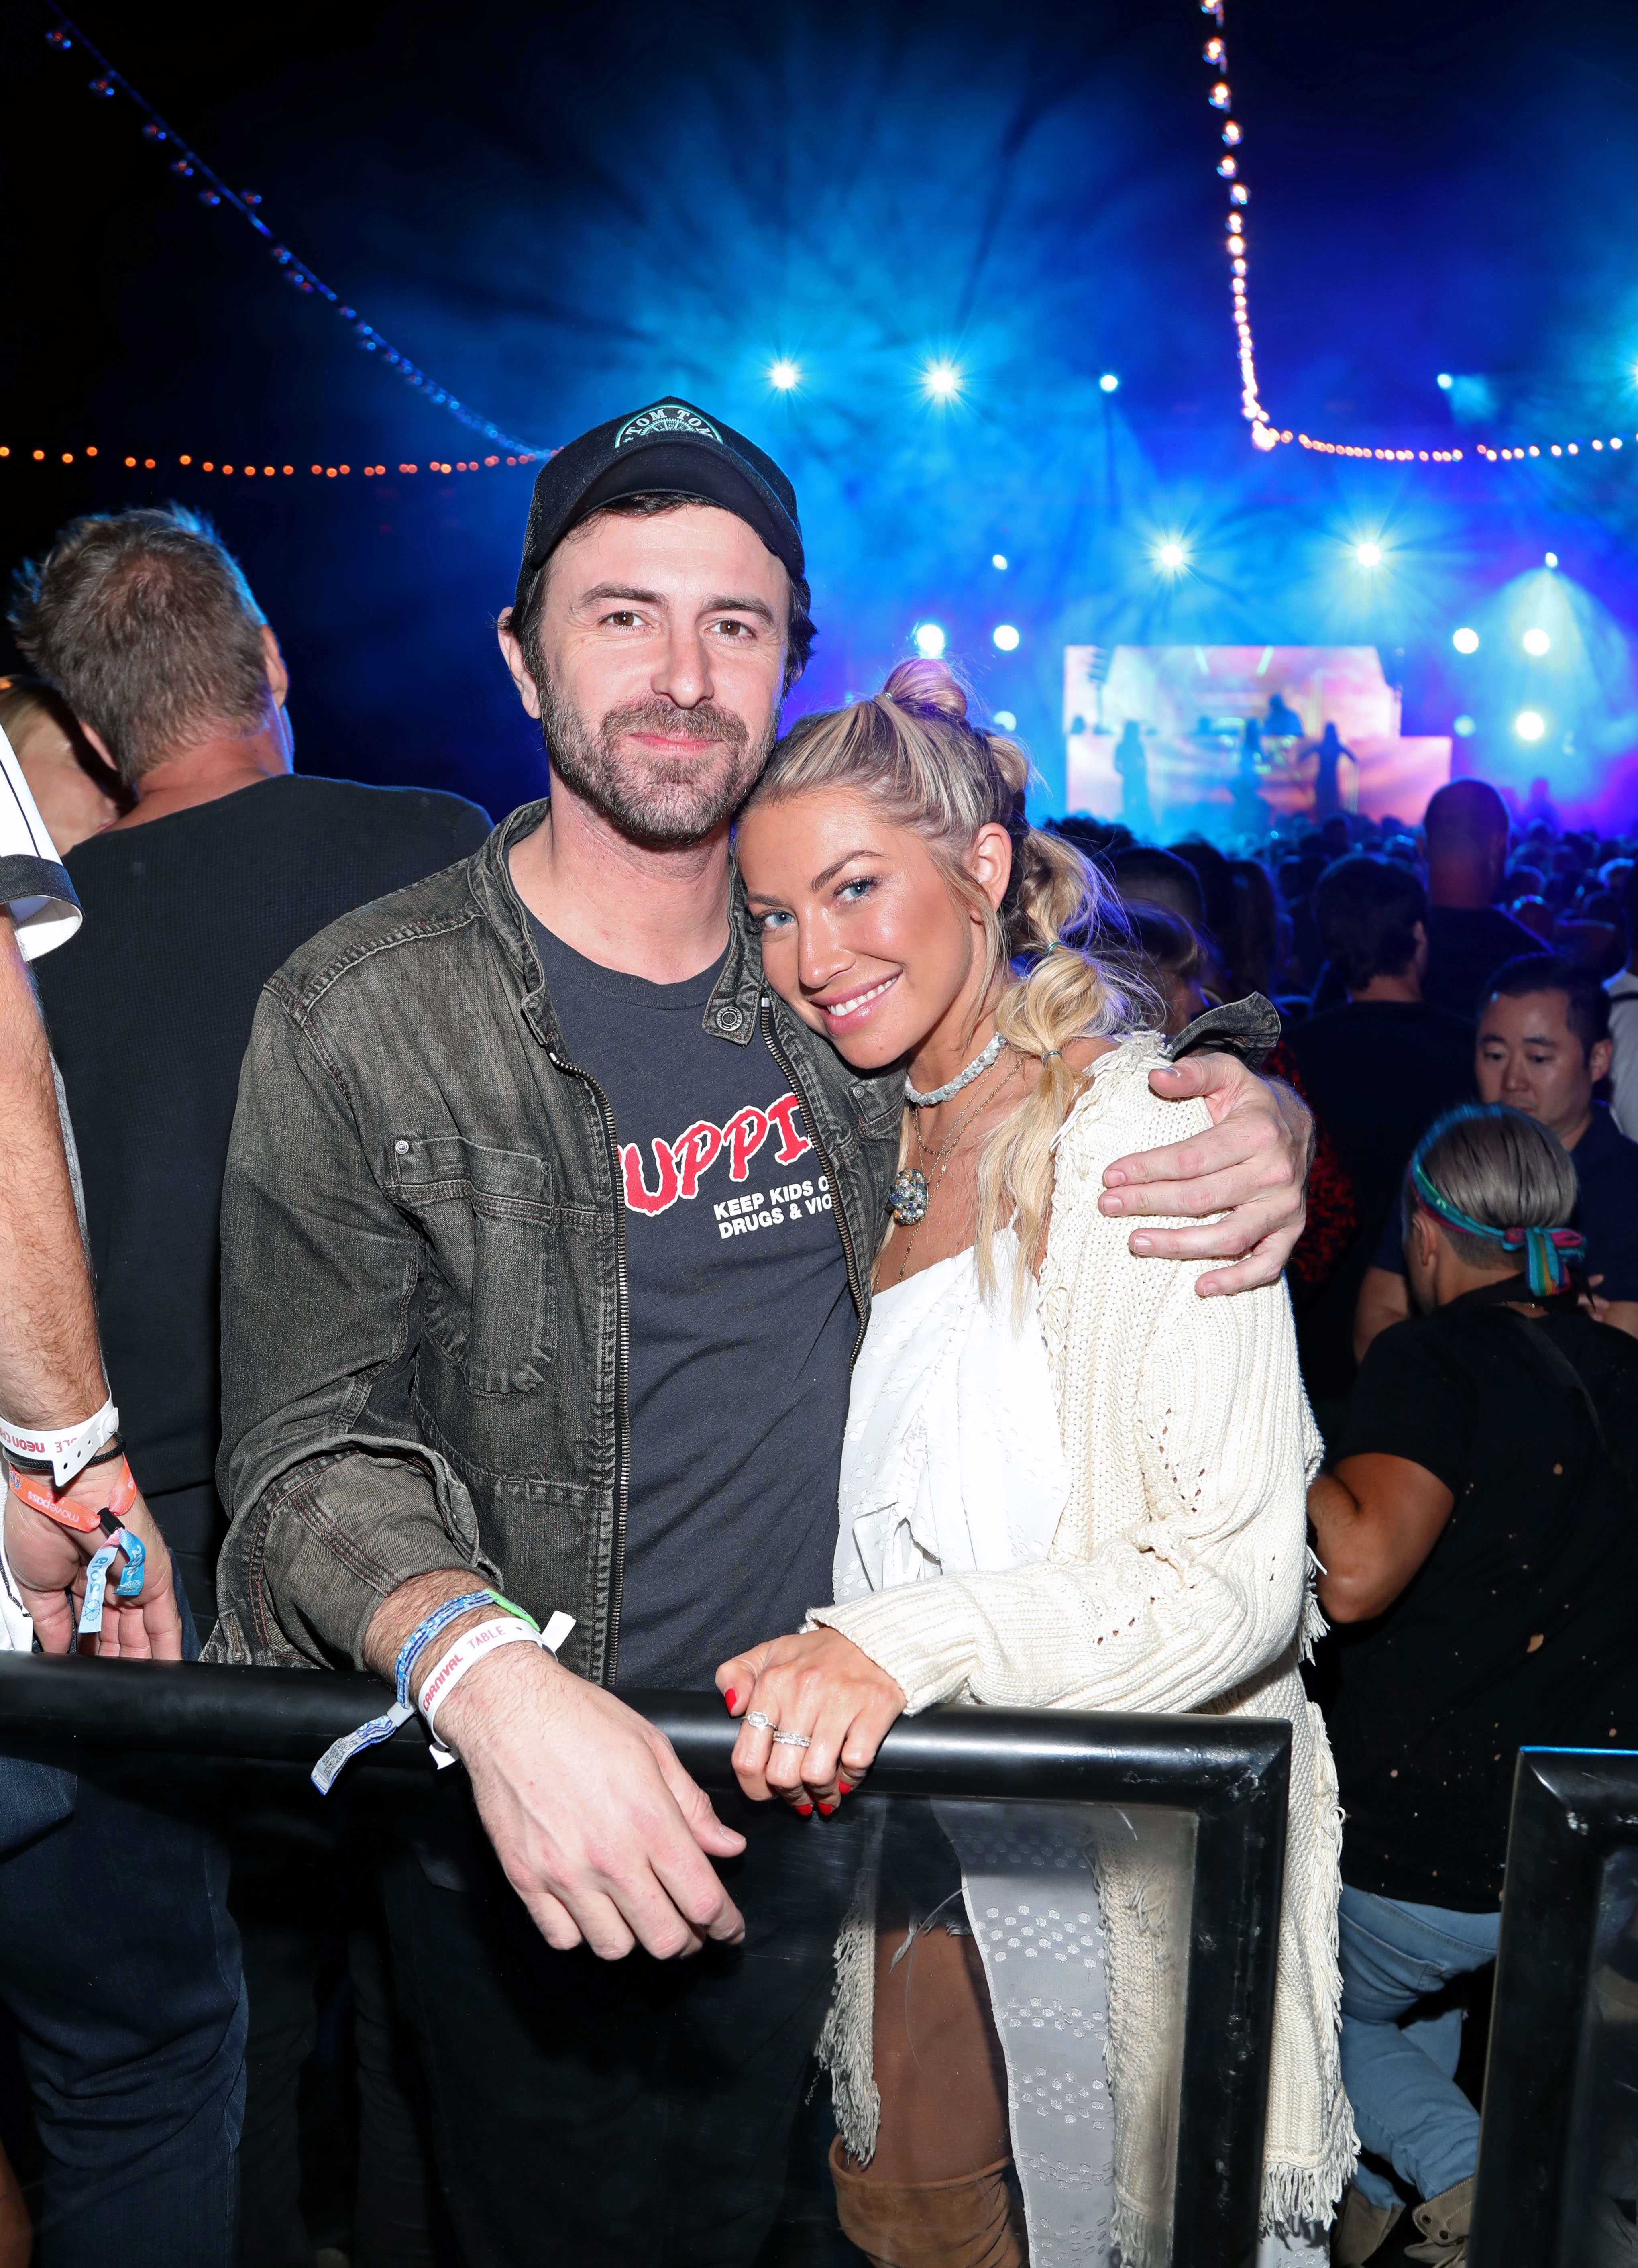 Beau Clark Stassi Schroeder Coachella 2019 - The Vanderpump Rules star and her boyfriend attended the Levi's Presents Neon Carnival with Bondi Sands and Pokemon: Detective Pikachu on Saturday, April 13.